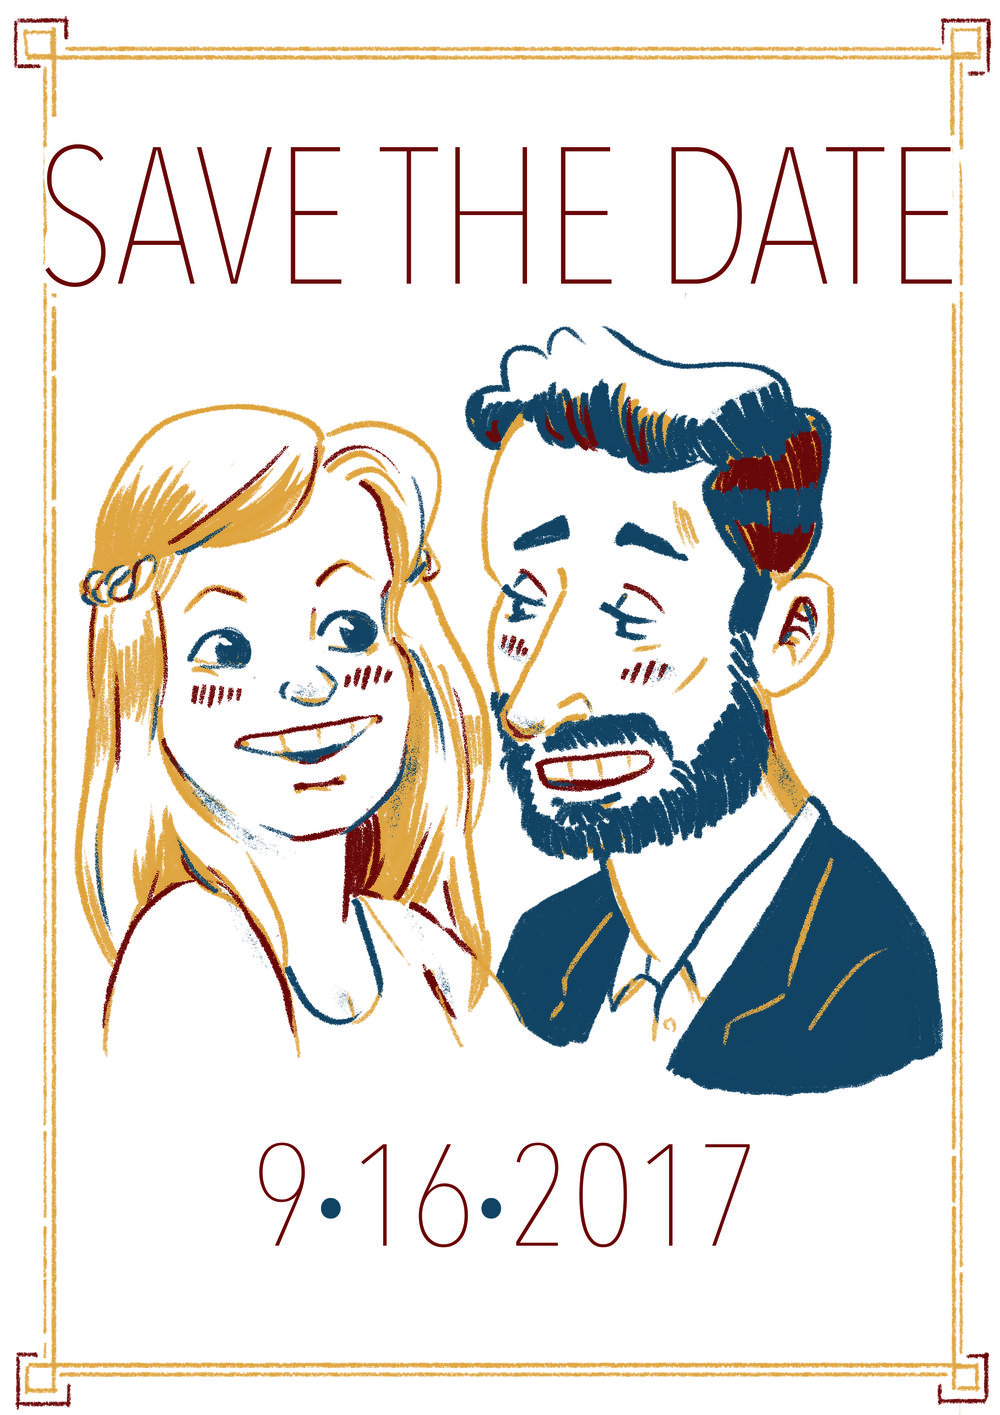 JR KC Savethedate.jpg